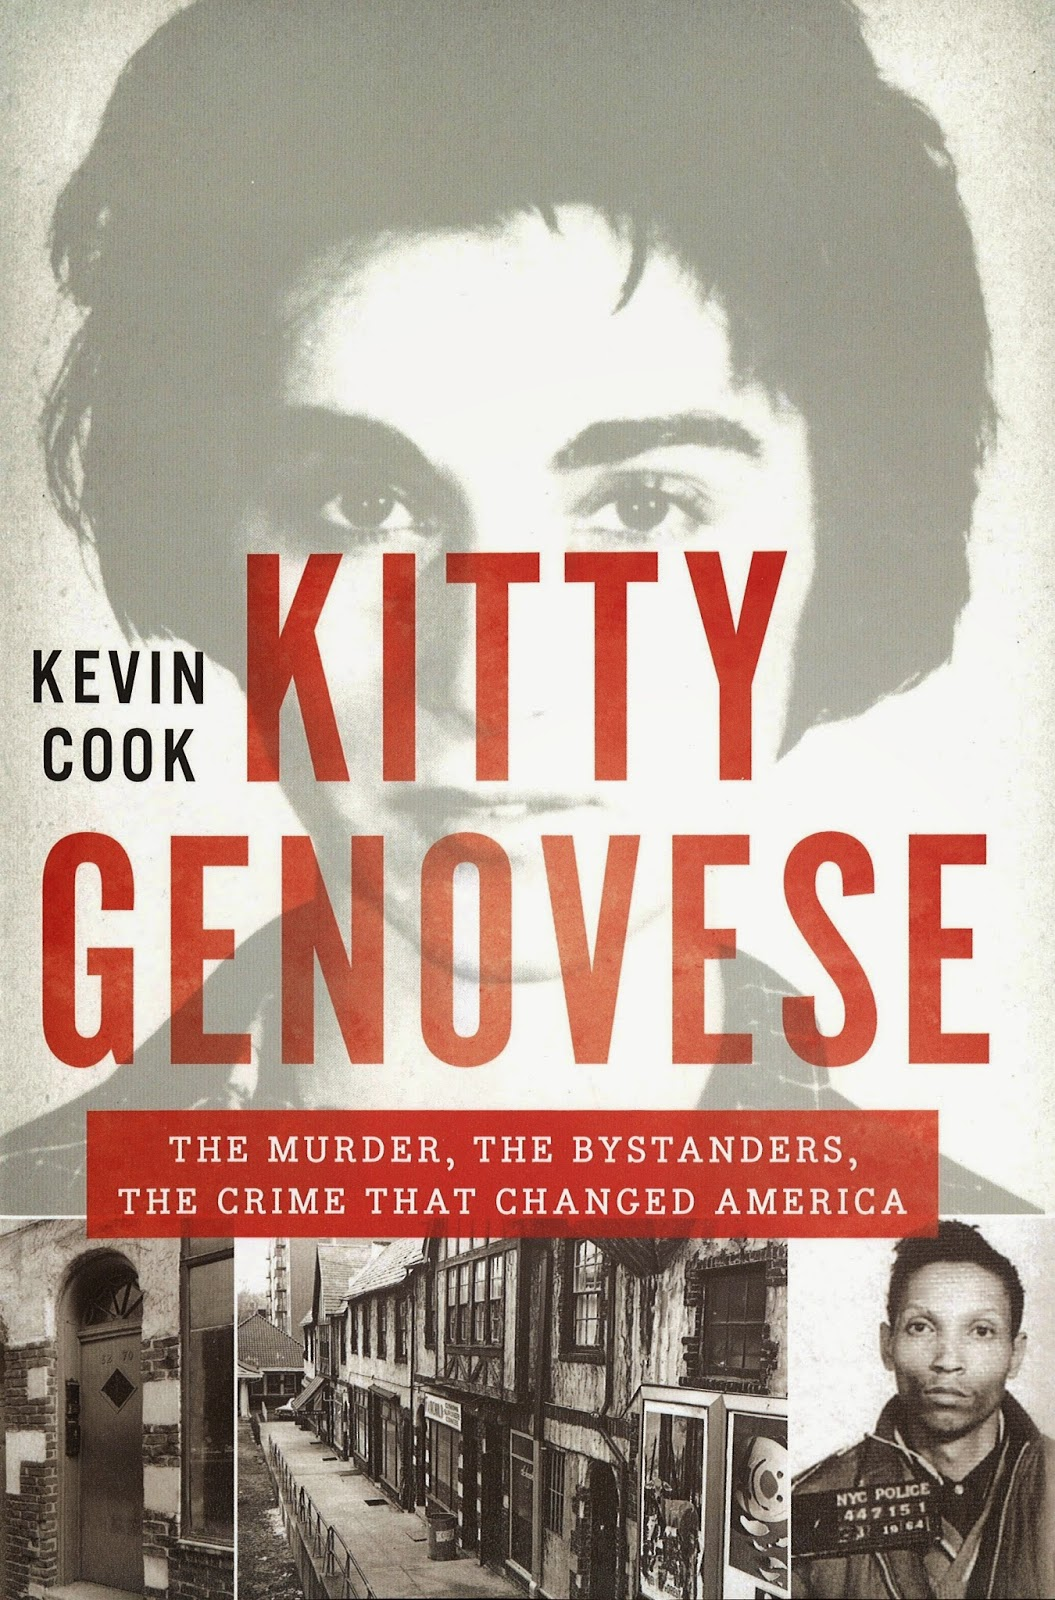 Non-Fiction: <i>Kitty Genovese: The Murder, the Bystanders, the Crime that Changed America</i> <br>by Kevin Cook